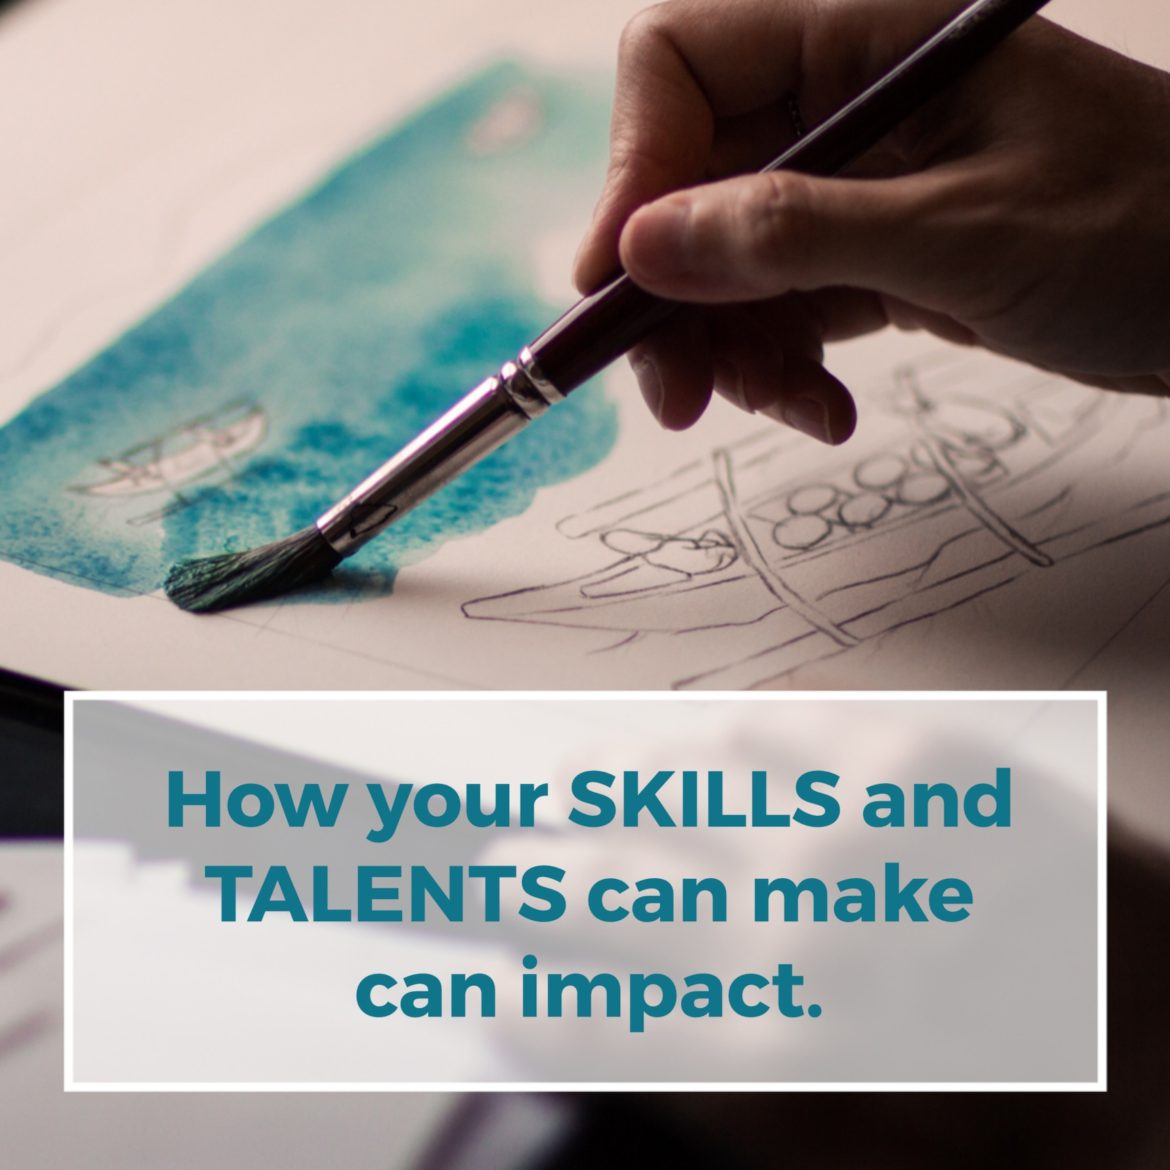 How Your Skills and Talents Can Make an Impact